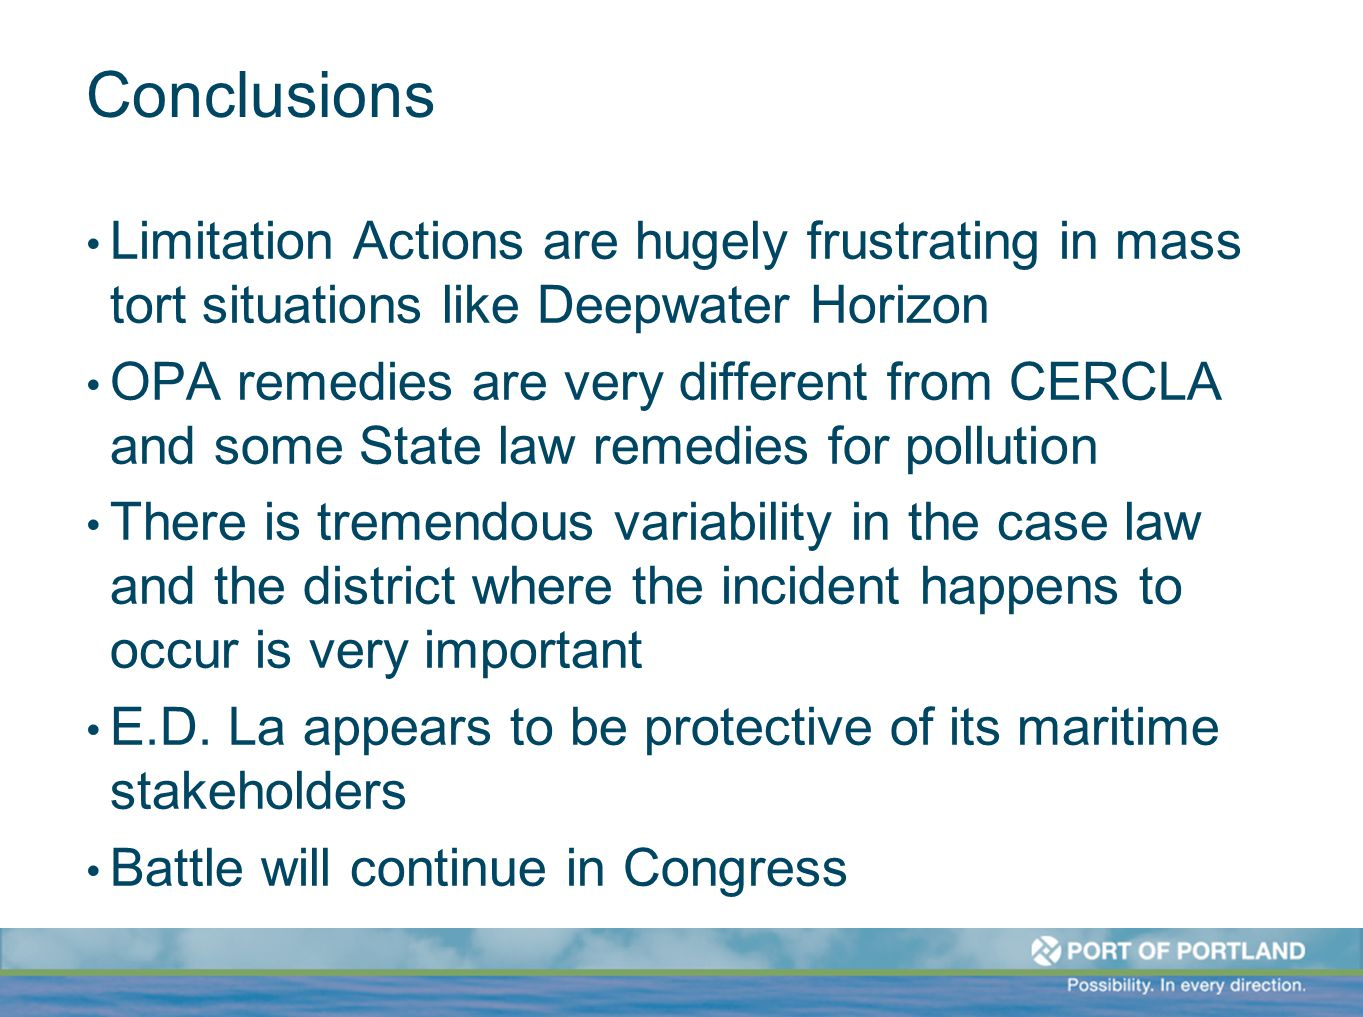 Conclusions Limitation Actions are hugely frustrating in mass tort situations like Deepwater Horizon OPA remedies are very different from CERCLA and some State law remedies for pollution There is tremendous variability in the case law and the district where the incident happens to occur is very important E.D.